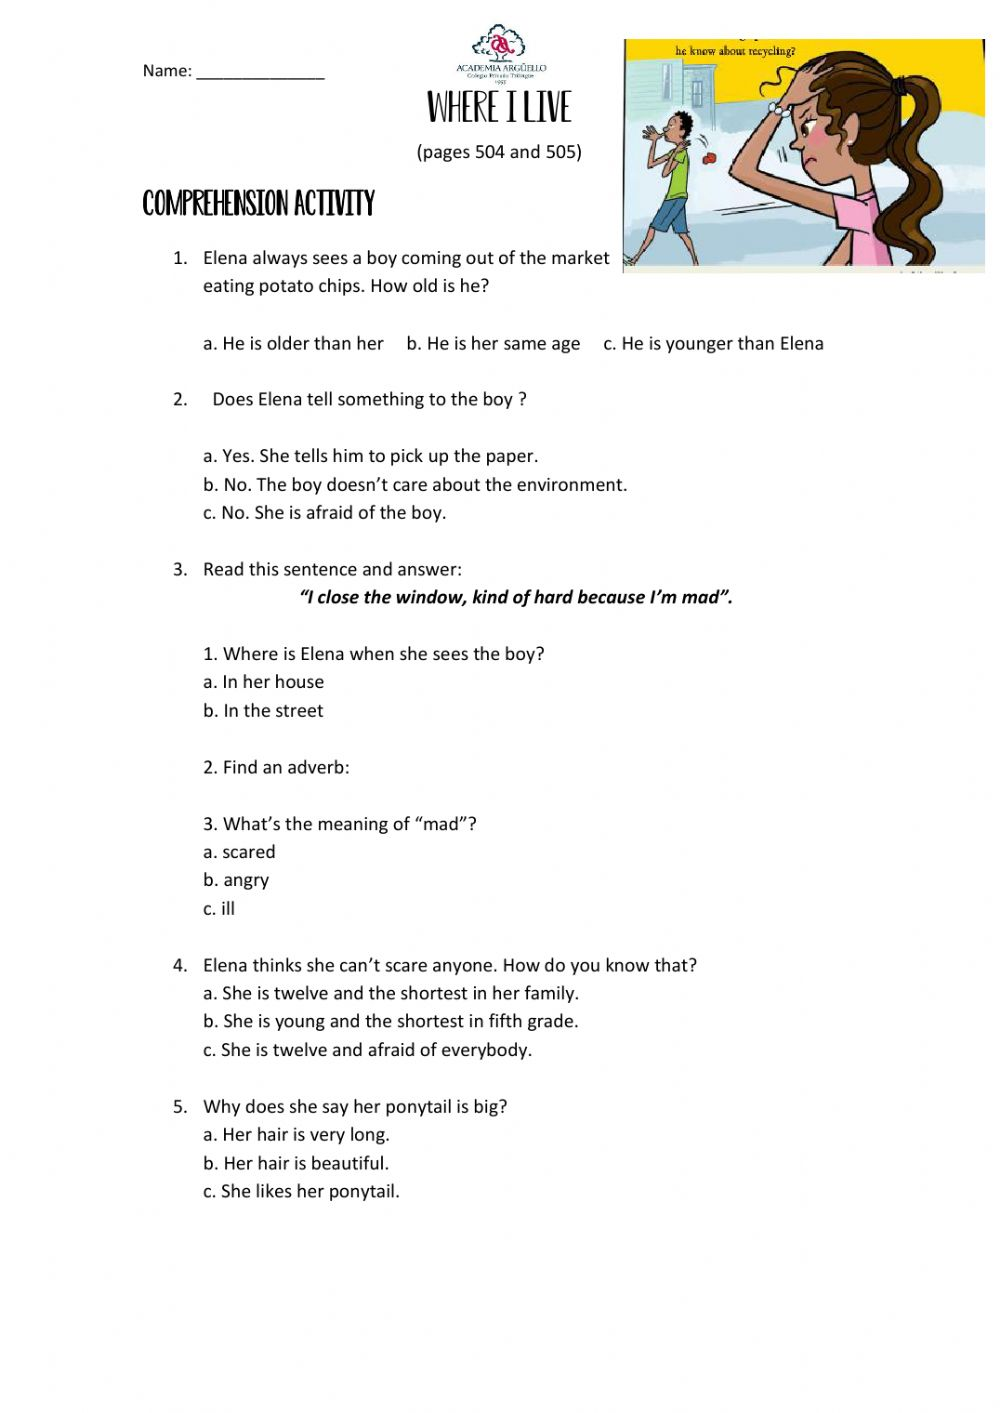 medium resolution of Reading comprehension online exercise for 6TH GRADE